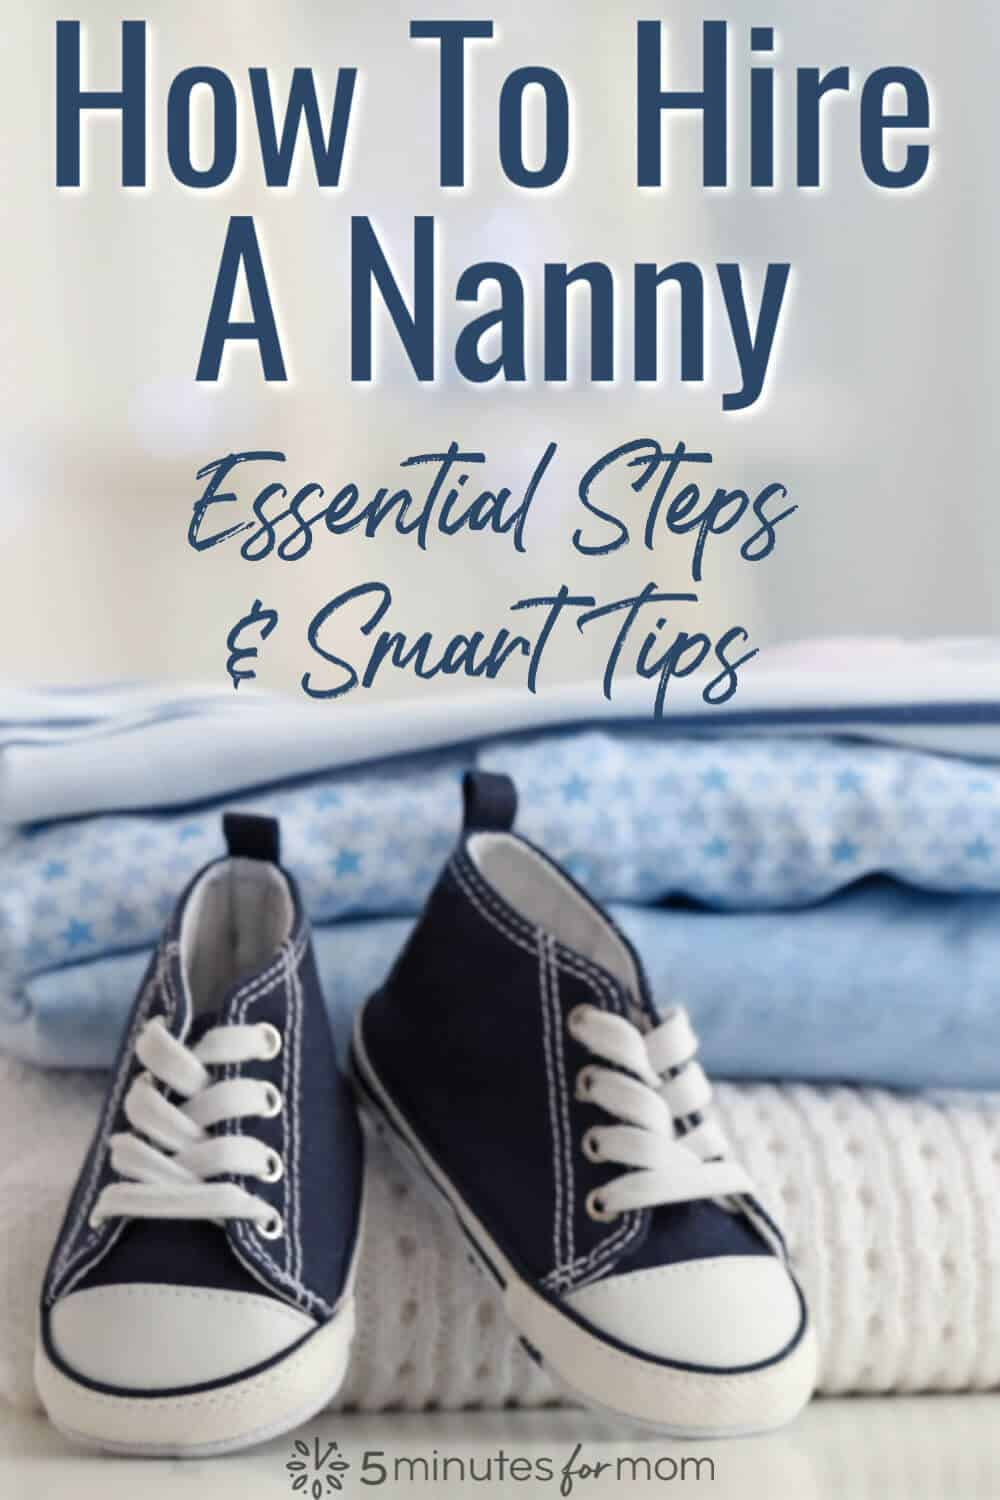 How To Hire A Nanny - Smart Tips